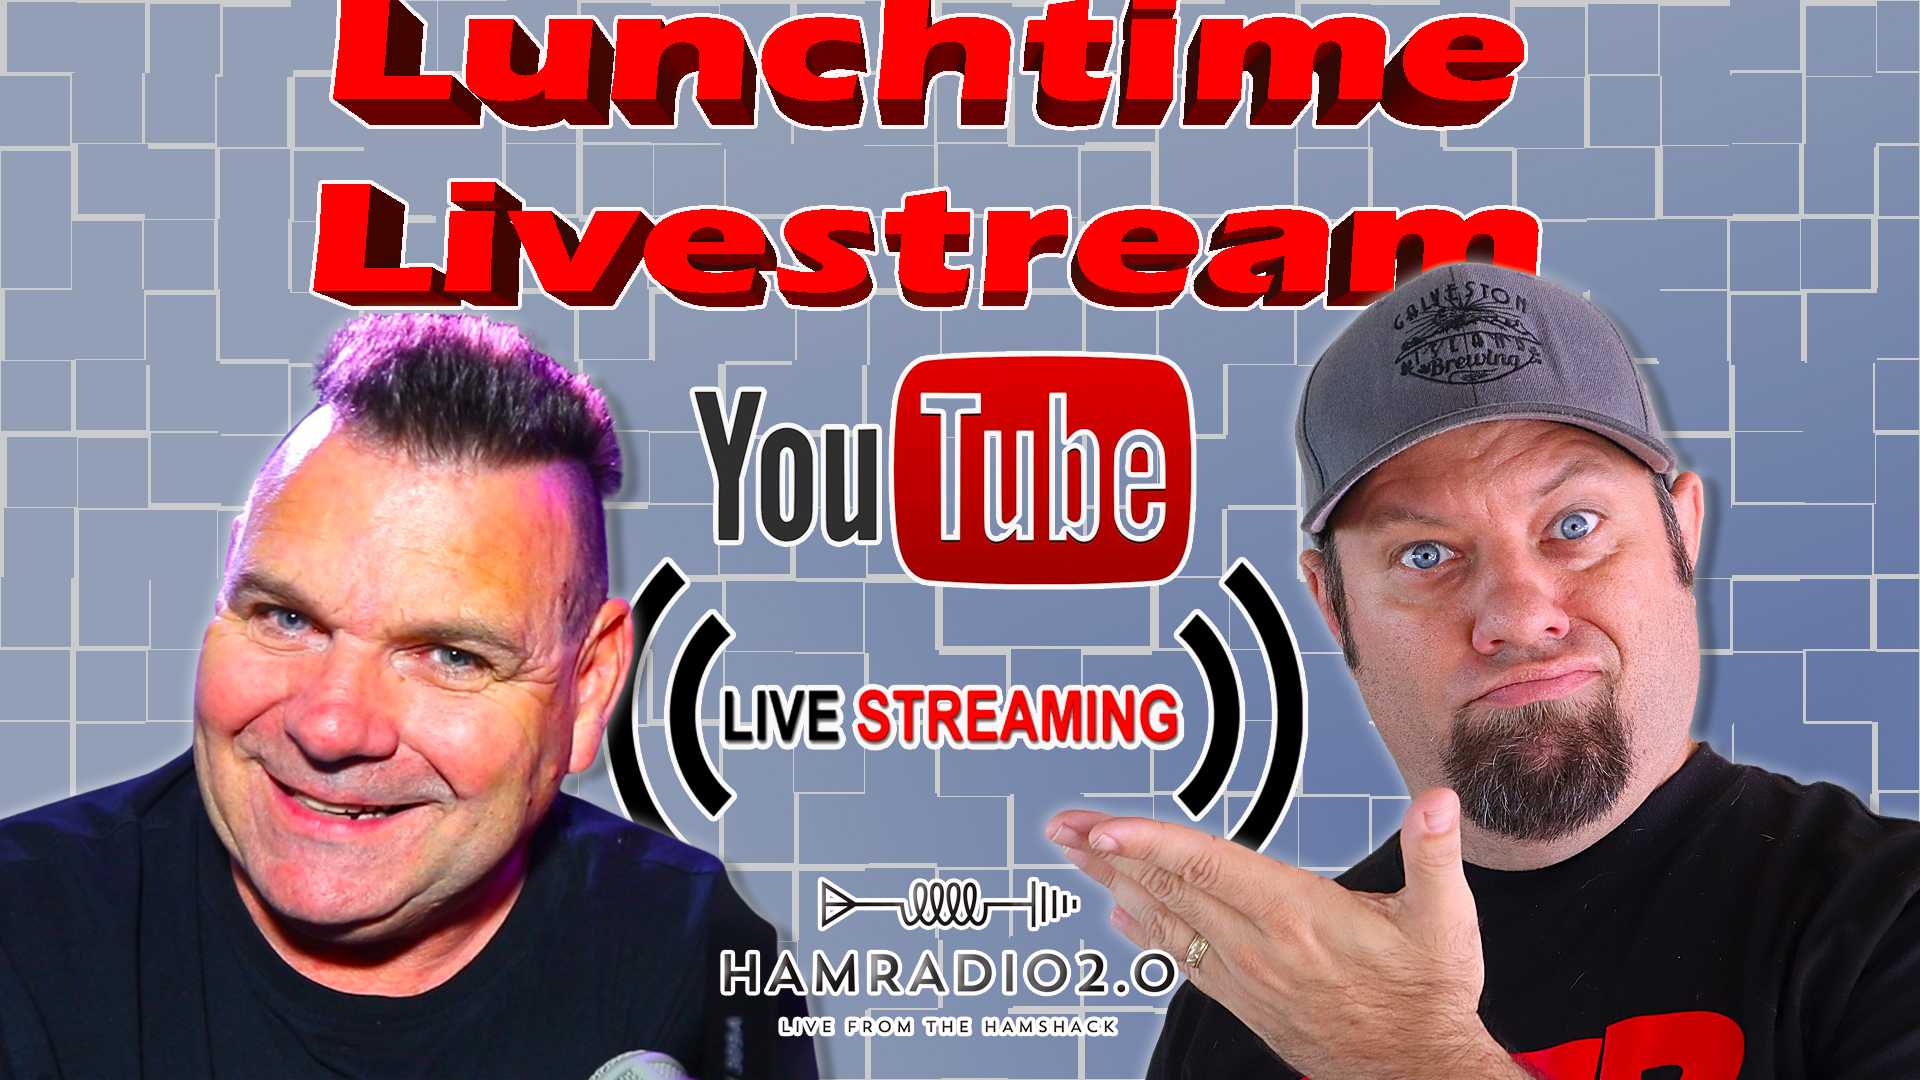 Episode 479: Lunchtime Livestream for Oct 21st with the DX Commander!